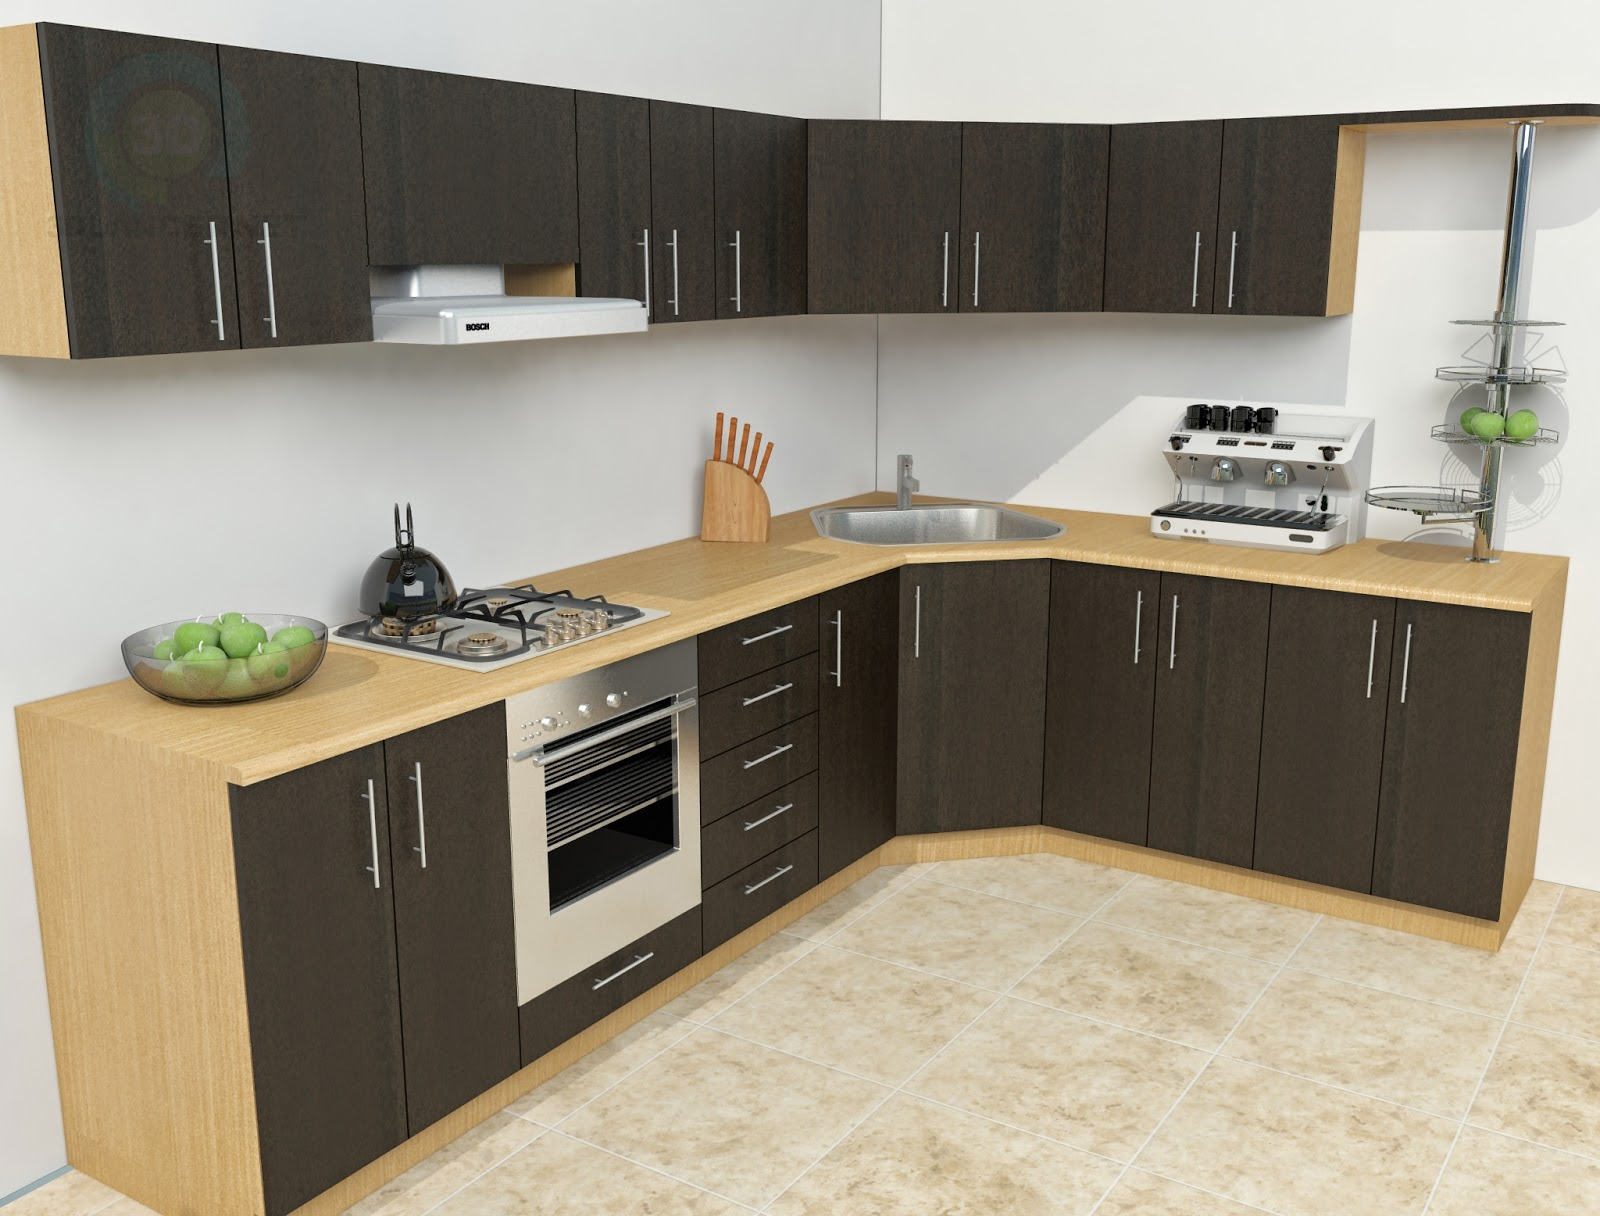 3d kitchen decorating ideas home designs for Kitchen model ideas